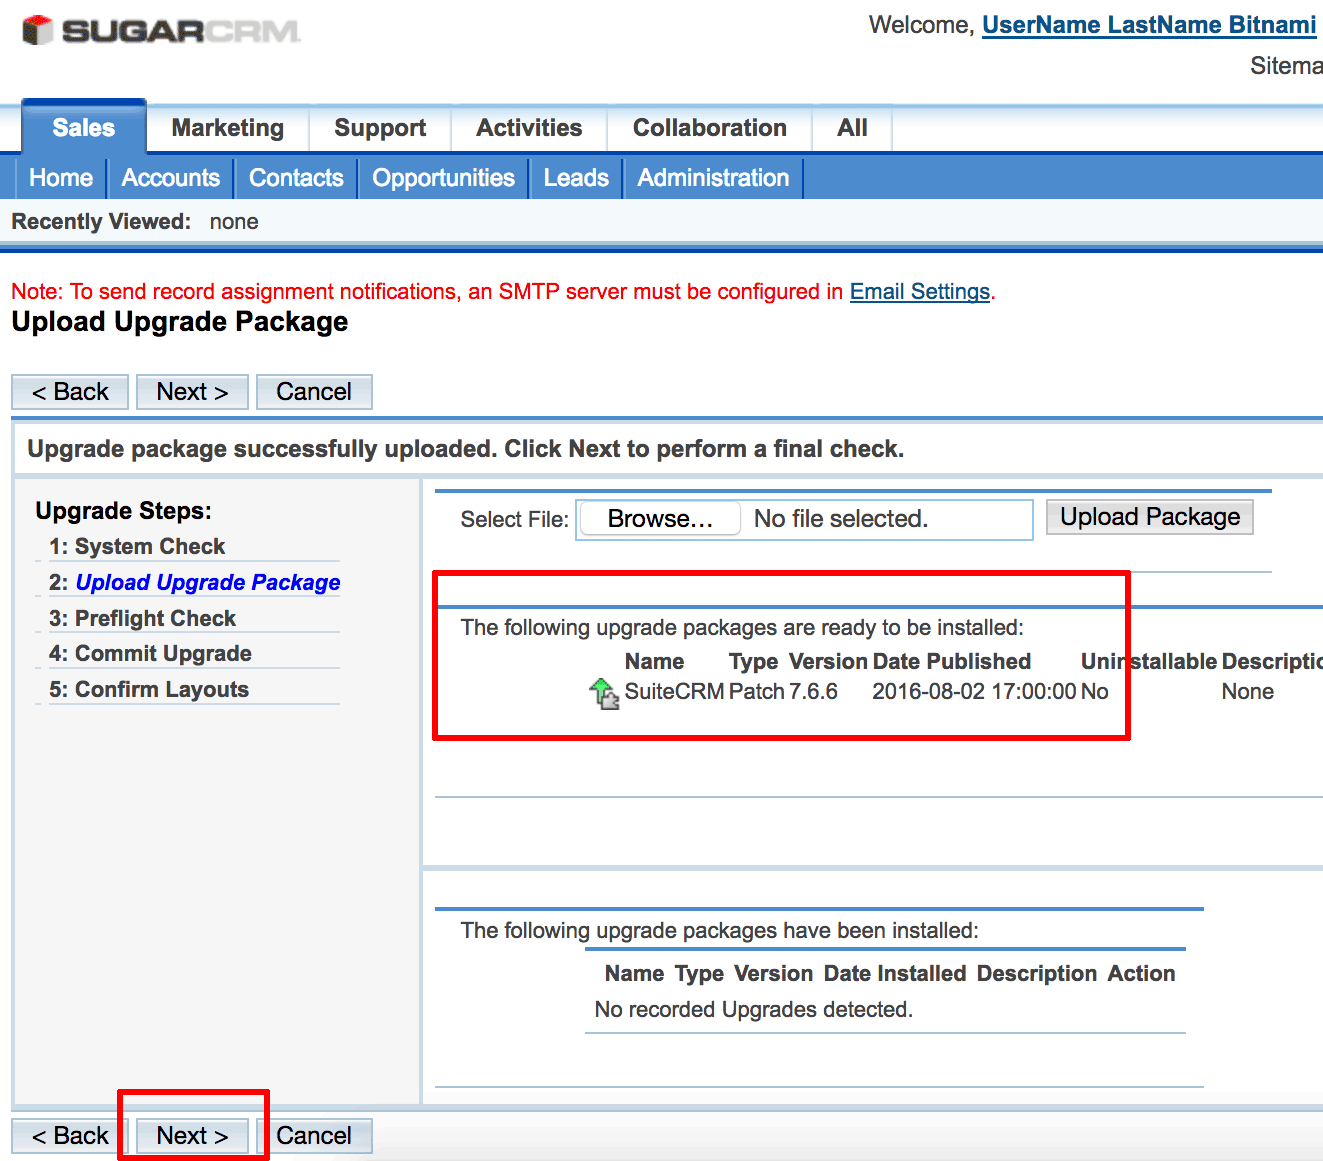 SugarCRM upgrade wizard upload